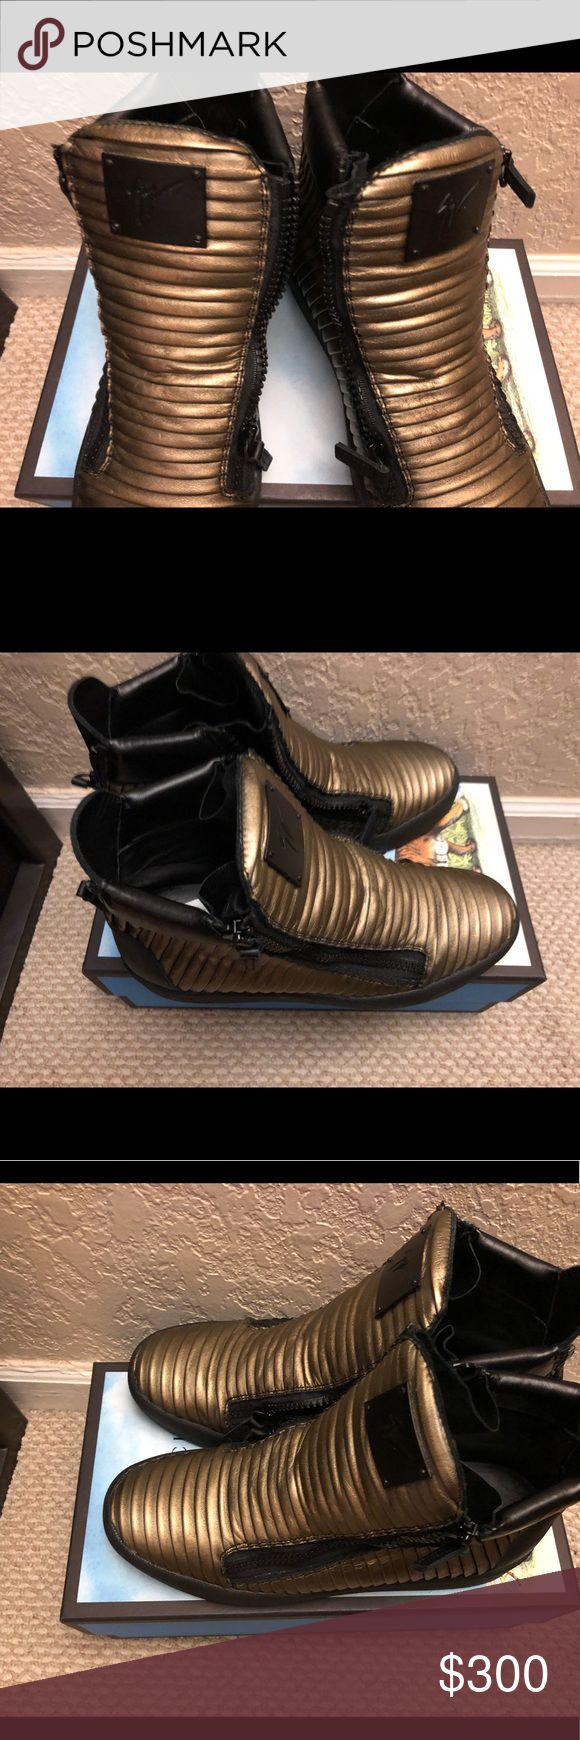 Giuseppe Zanotti high top sneakers Worn once authentic Giuseppe Zanotti for sale Shoes Sneakers